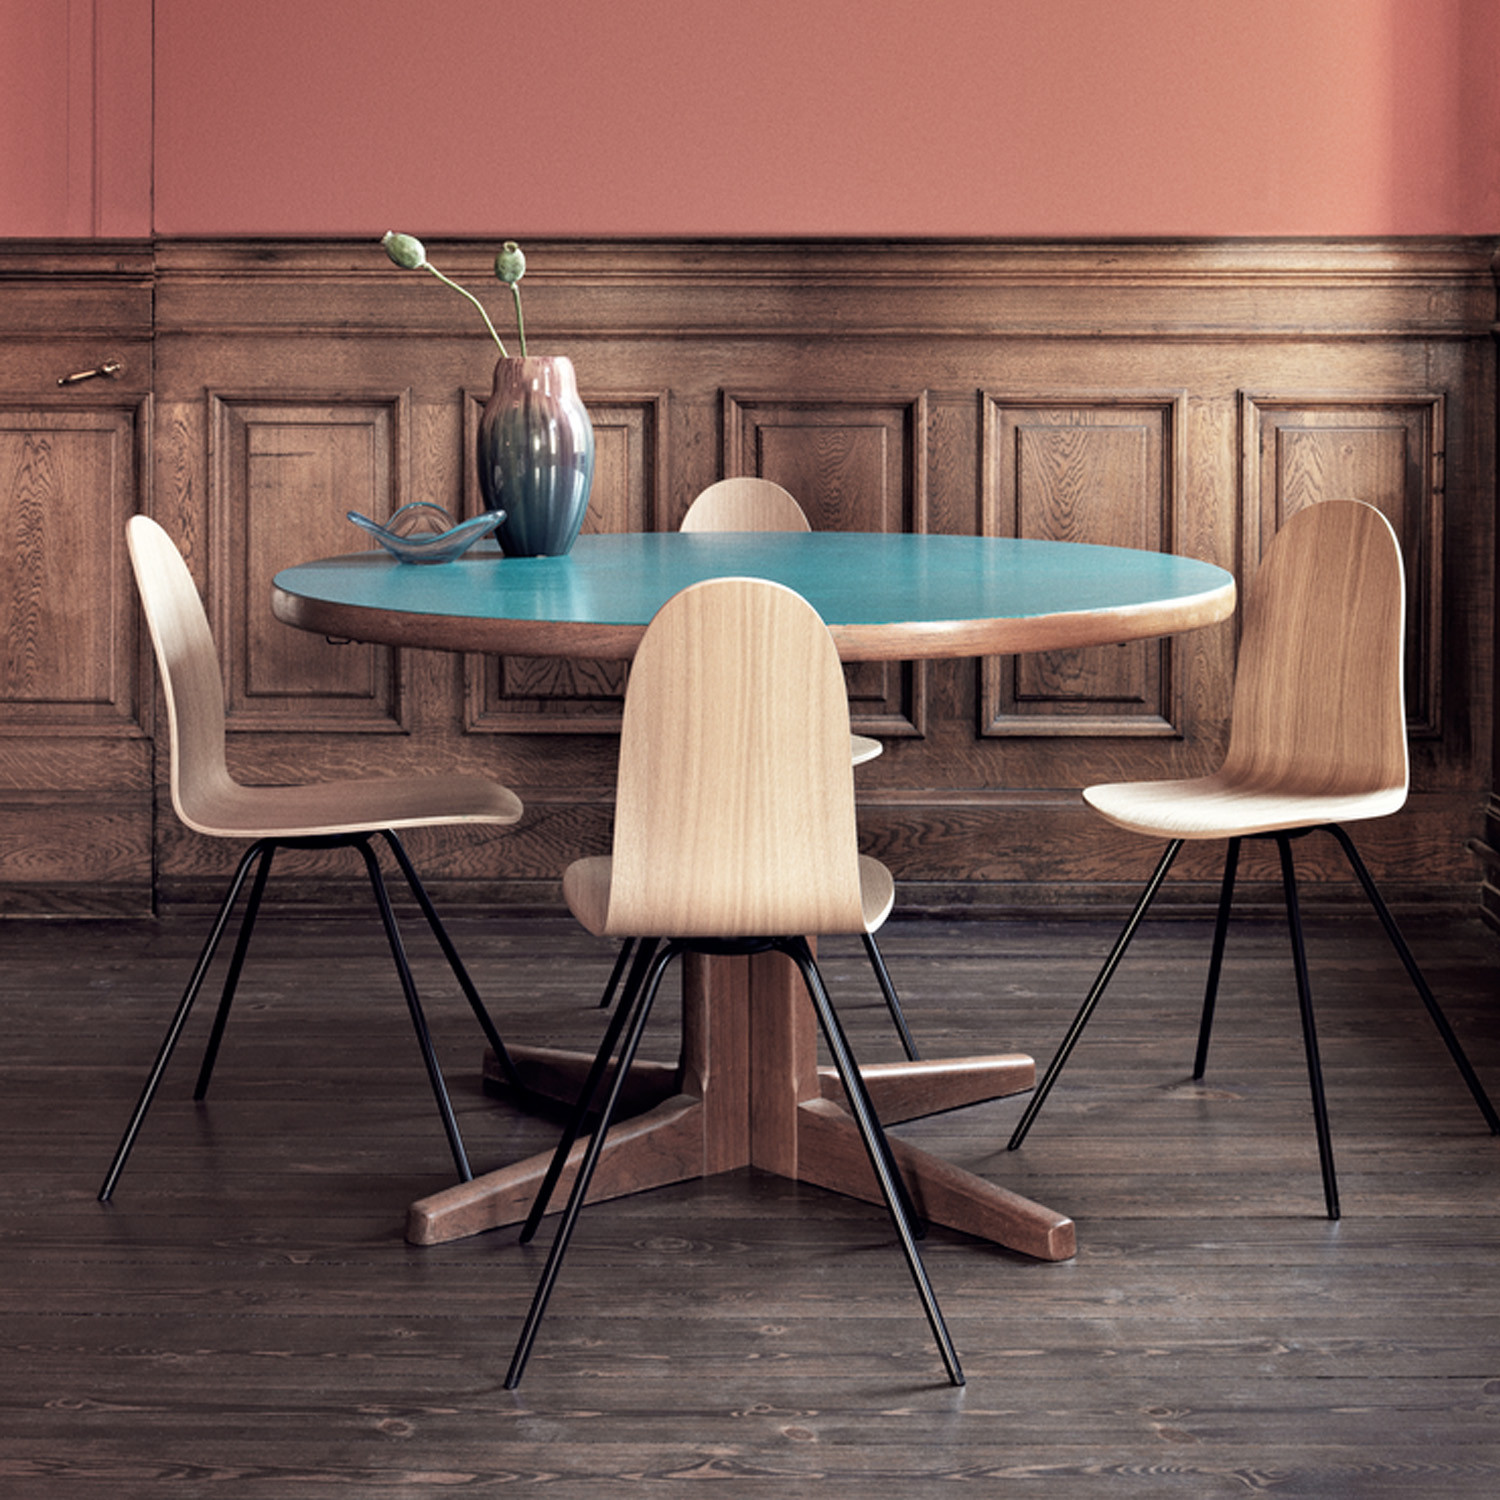 The Tongue Dining Chair from Howe